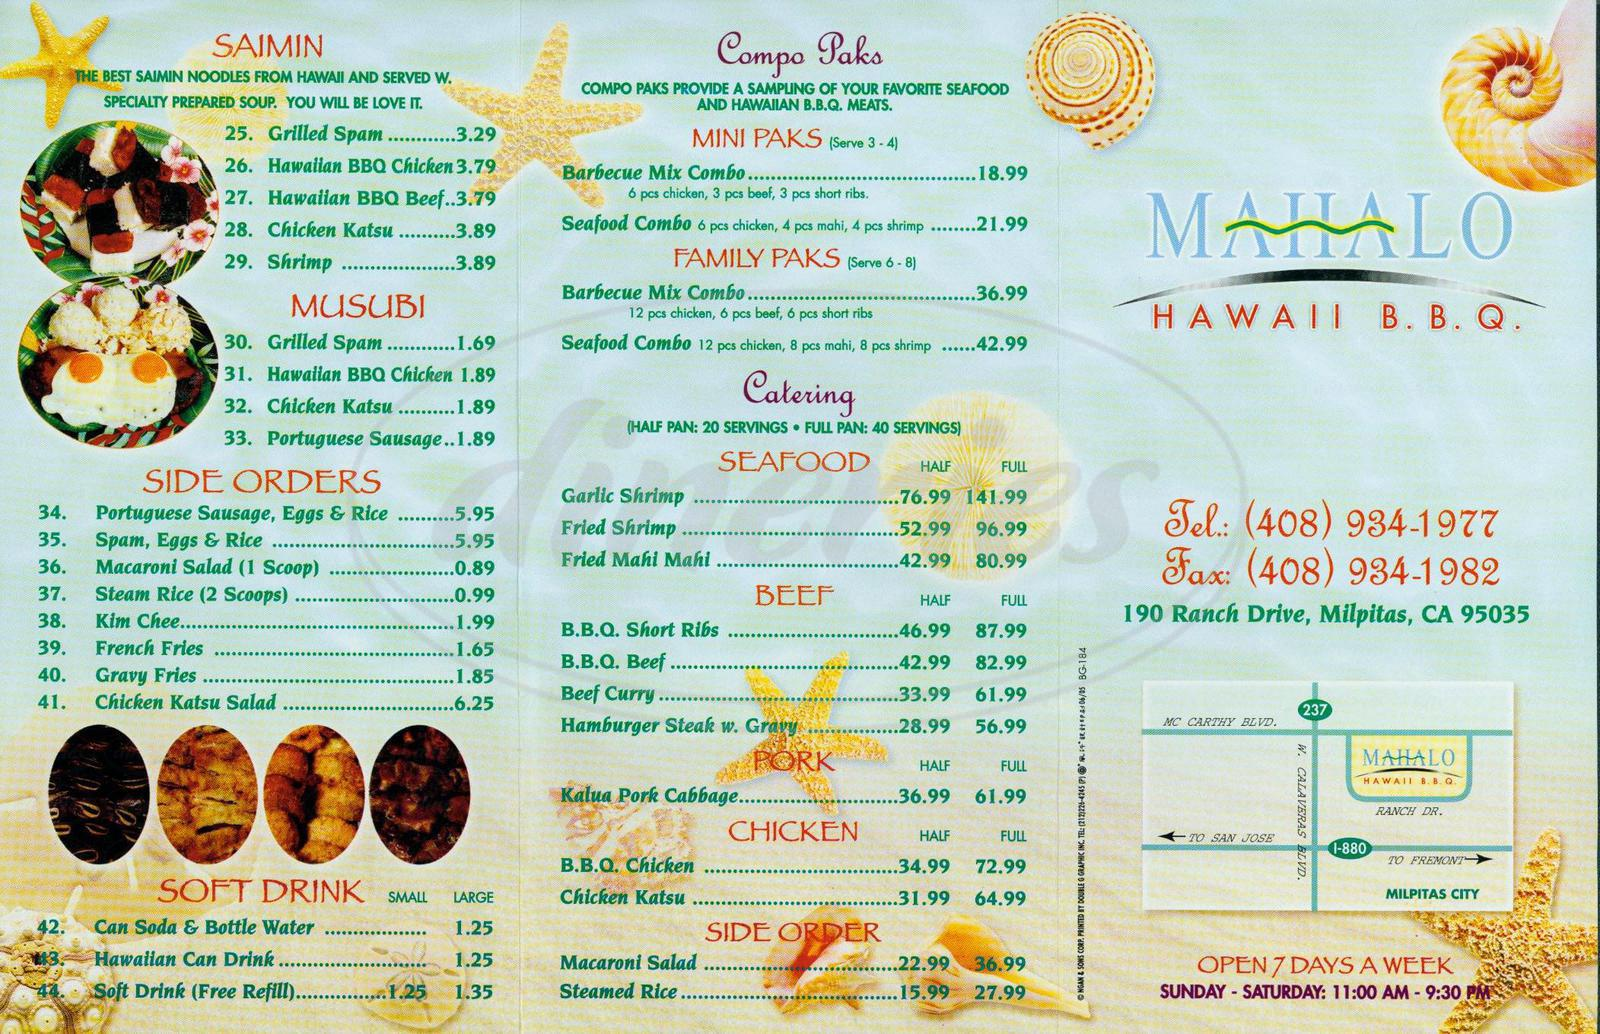 menu for Mahalo Hawaii BBQ